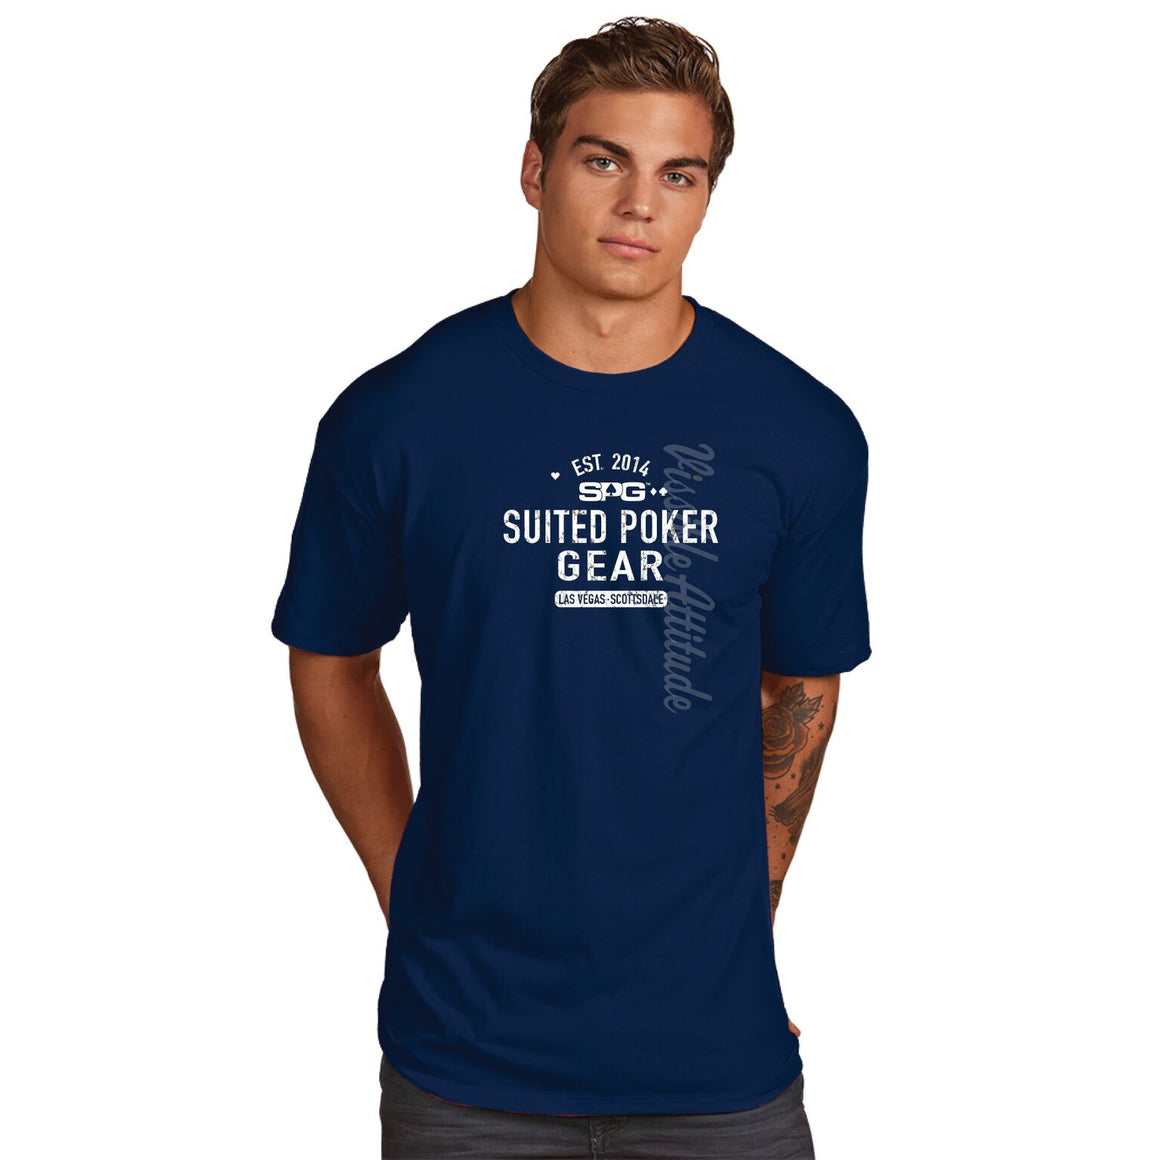 "SPG ""Established 2014"" T-Shirt - Suited Poker Gear"